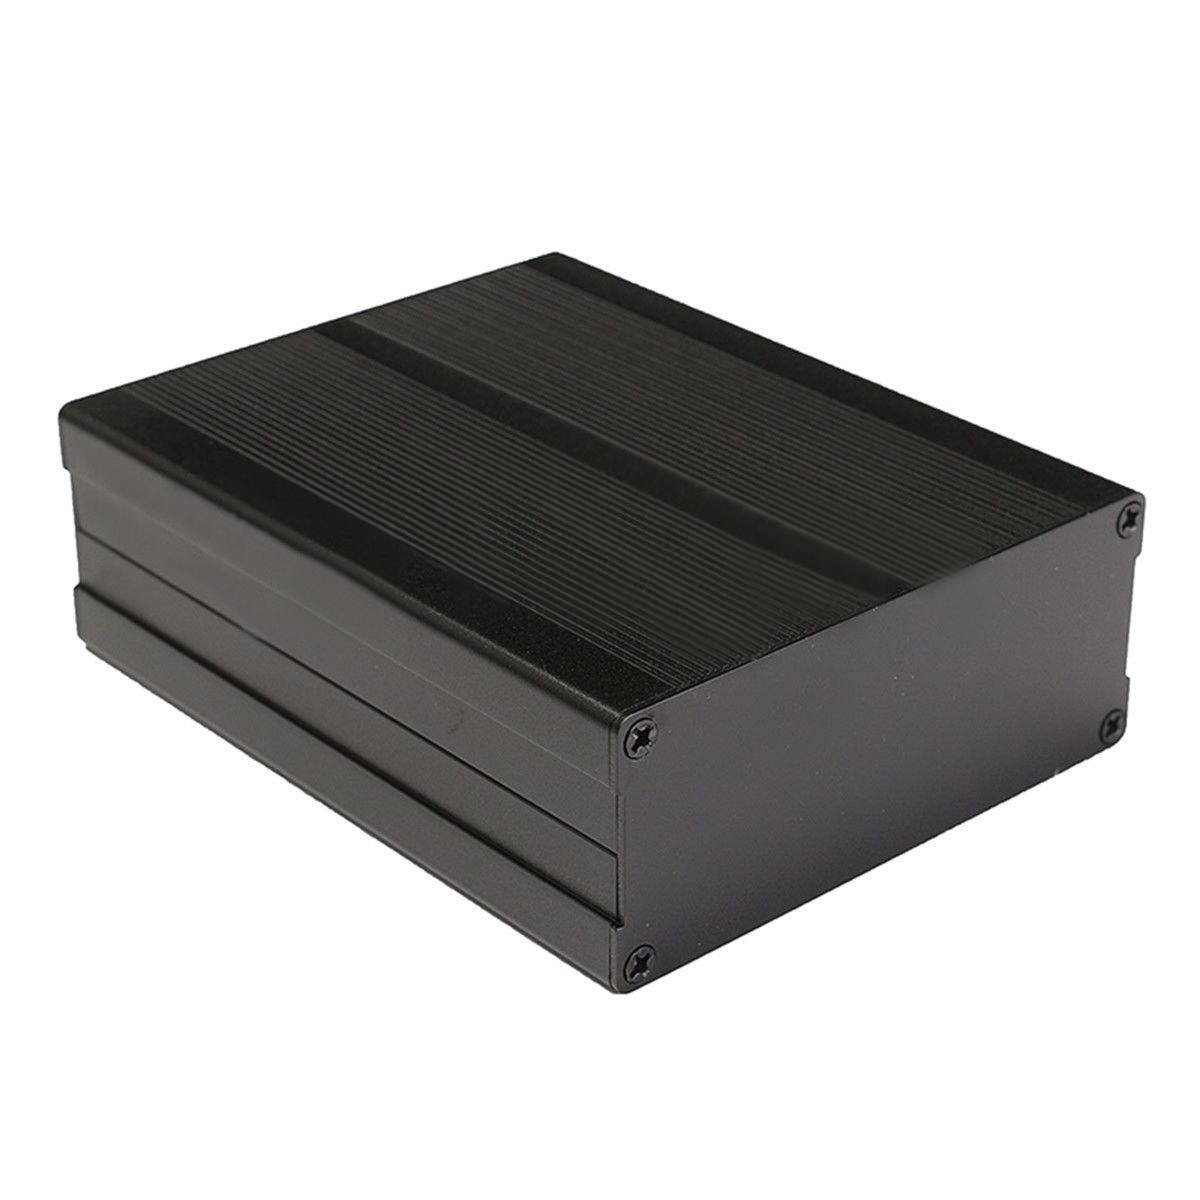 New Black Corrosion Resistant Aluminum Box Enclosure Instrument Case Mayitr Split Body Electronic DIY Project Cases 120*97*40mm 1pc electronic project instrument box black aluminum enclosure case 100x66x43mm mayitr with corrosion resistance